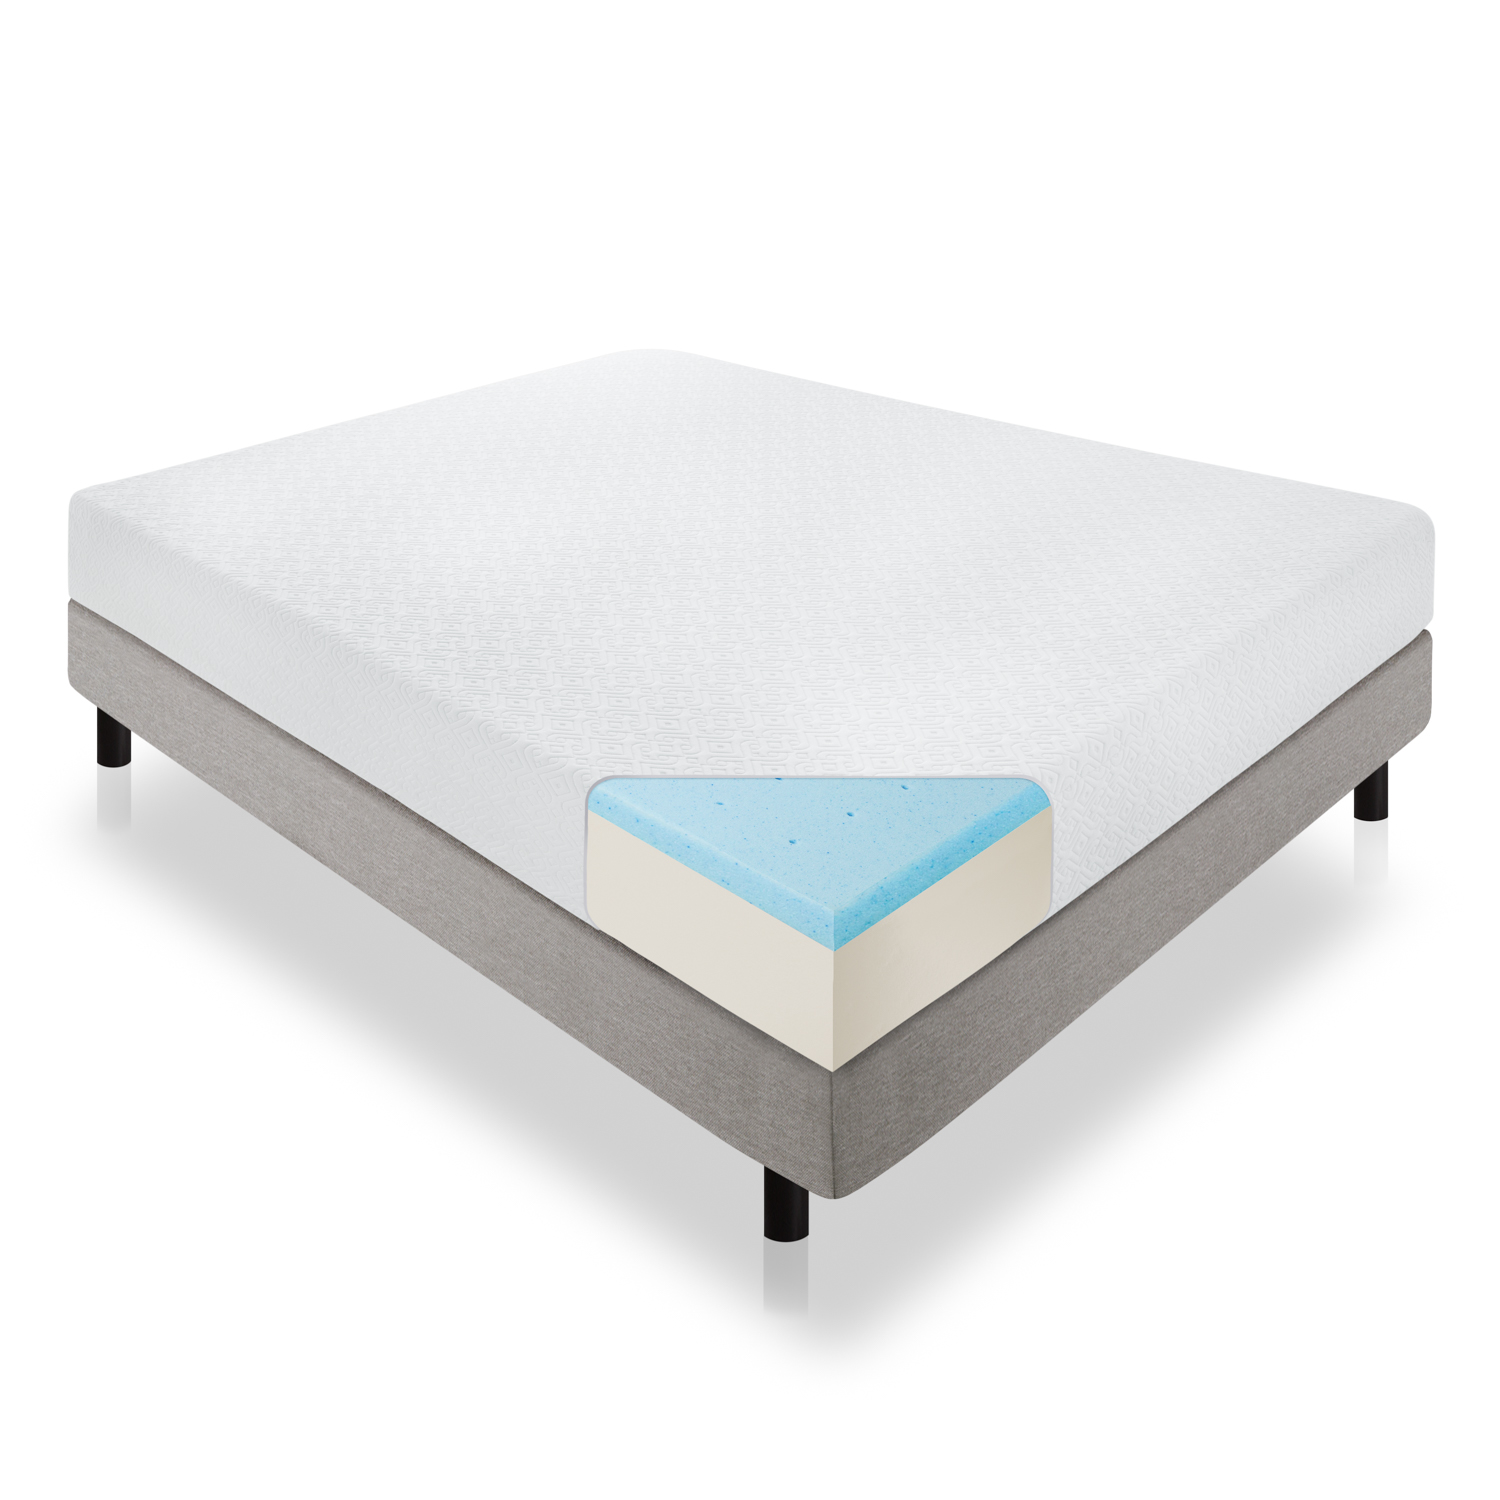 Lucid 6 8 10 12 inch Gel Memory Foam Mattress></p> <h4>Shipping</h4> <p><b>FREE SHIPPING</b> to the continental U.S.</p> <p></p> <h4>Payment</h4> <p>Only Paypal payments are accepted at this time, however you may utilize tools within Paypal to pay via your credit cards. The fund would eventually have to come from Paypal. Only paid items will be shipped.</p> <p></p> <h4>Returns</h4> <p>Returns accepted within 30 business days for unused, unwashed items that are still in original packaging.</p> <p></p> <h4>Warranty</h4> <p>10 year limited warranty guarantees that your LUCID mattress will be replaced, repaired or refunded at our discretion if it is deemed defective due to faulty workmanship or structural defects.</p> </div> <div class=